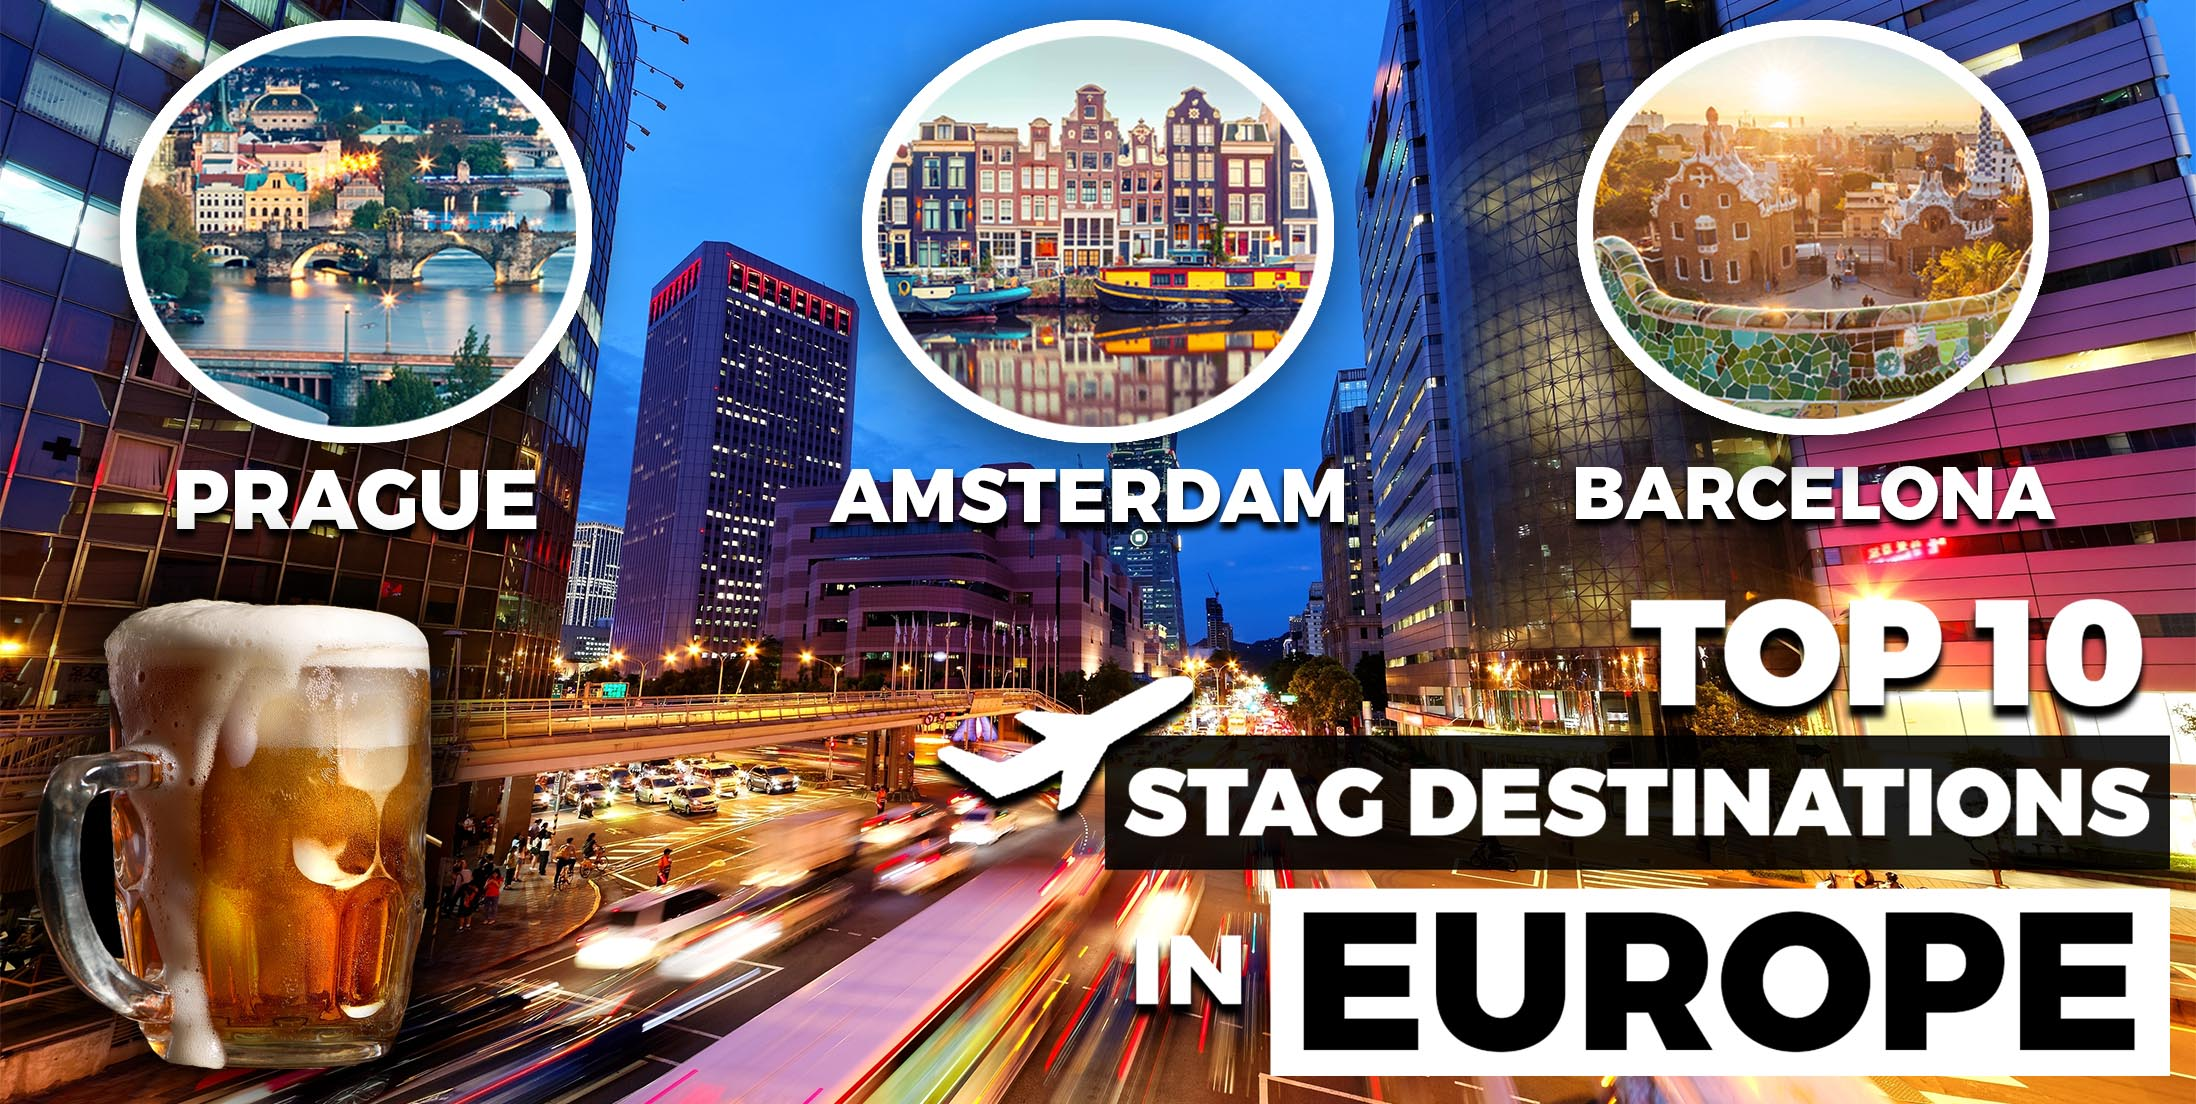 Top 10 Stag Destinations in Europe